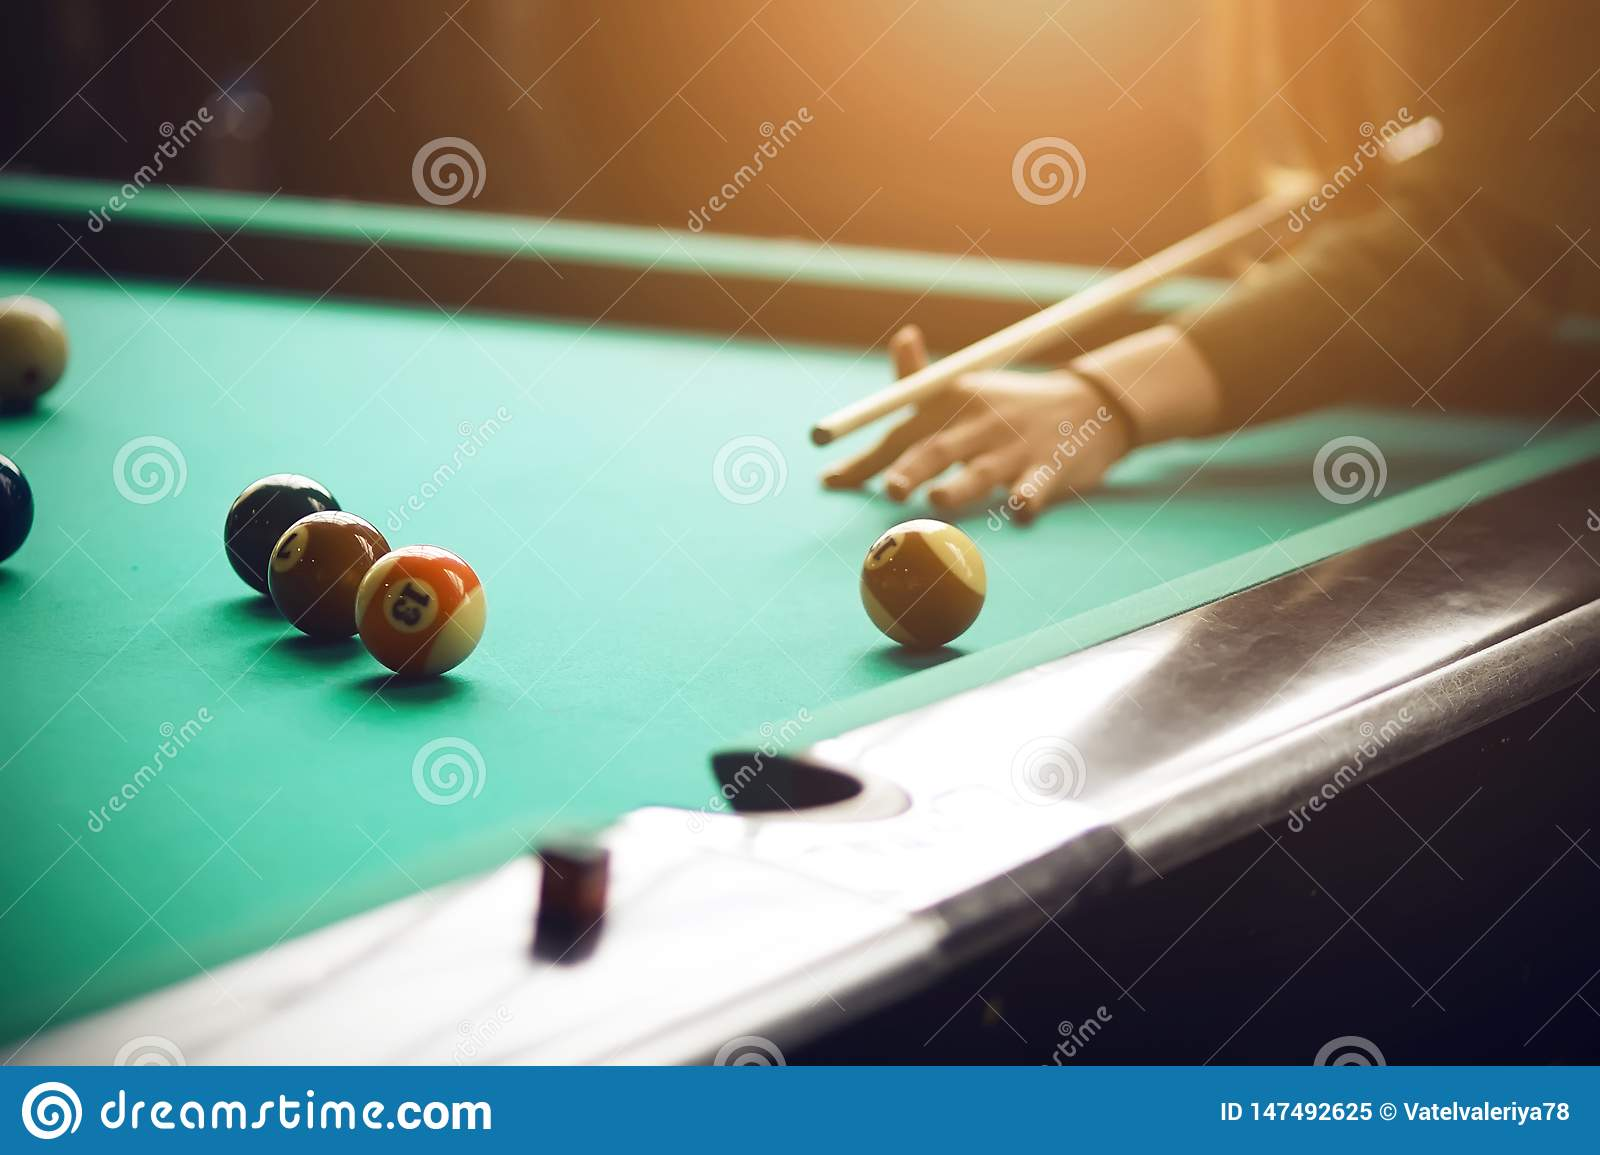 A girl in a green sweater playing Billiards